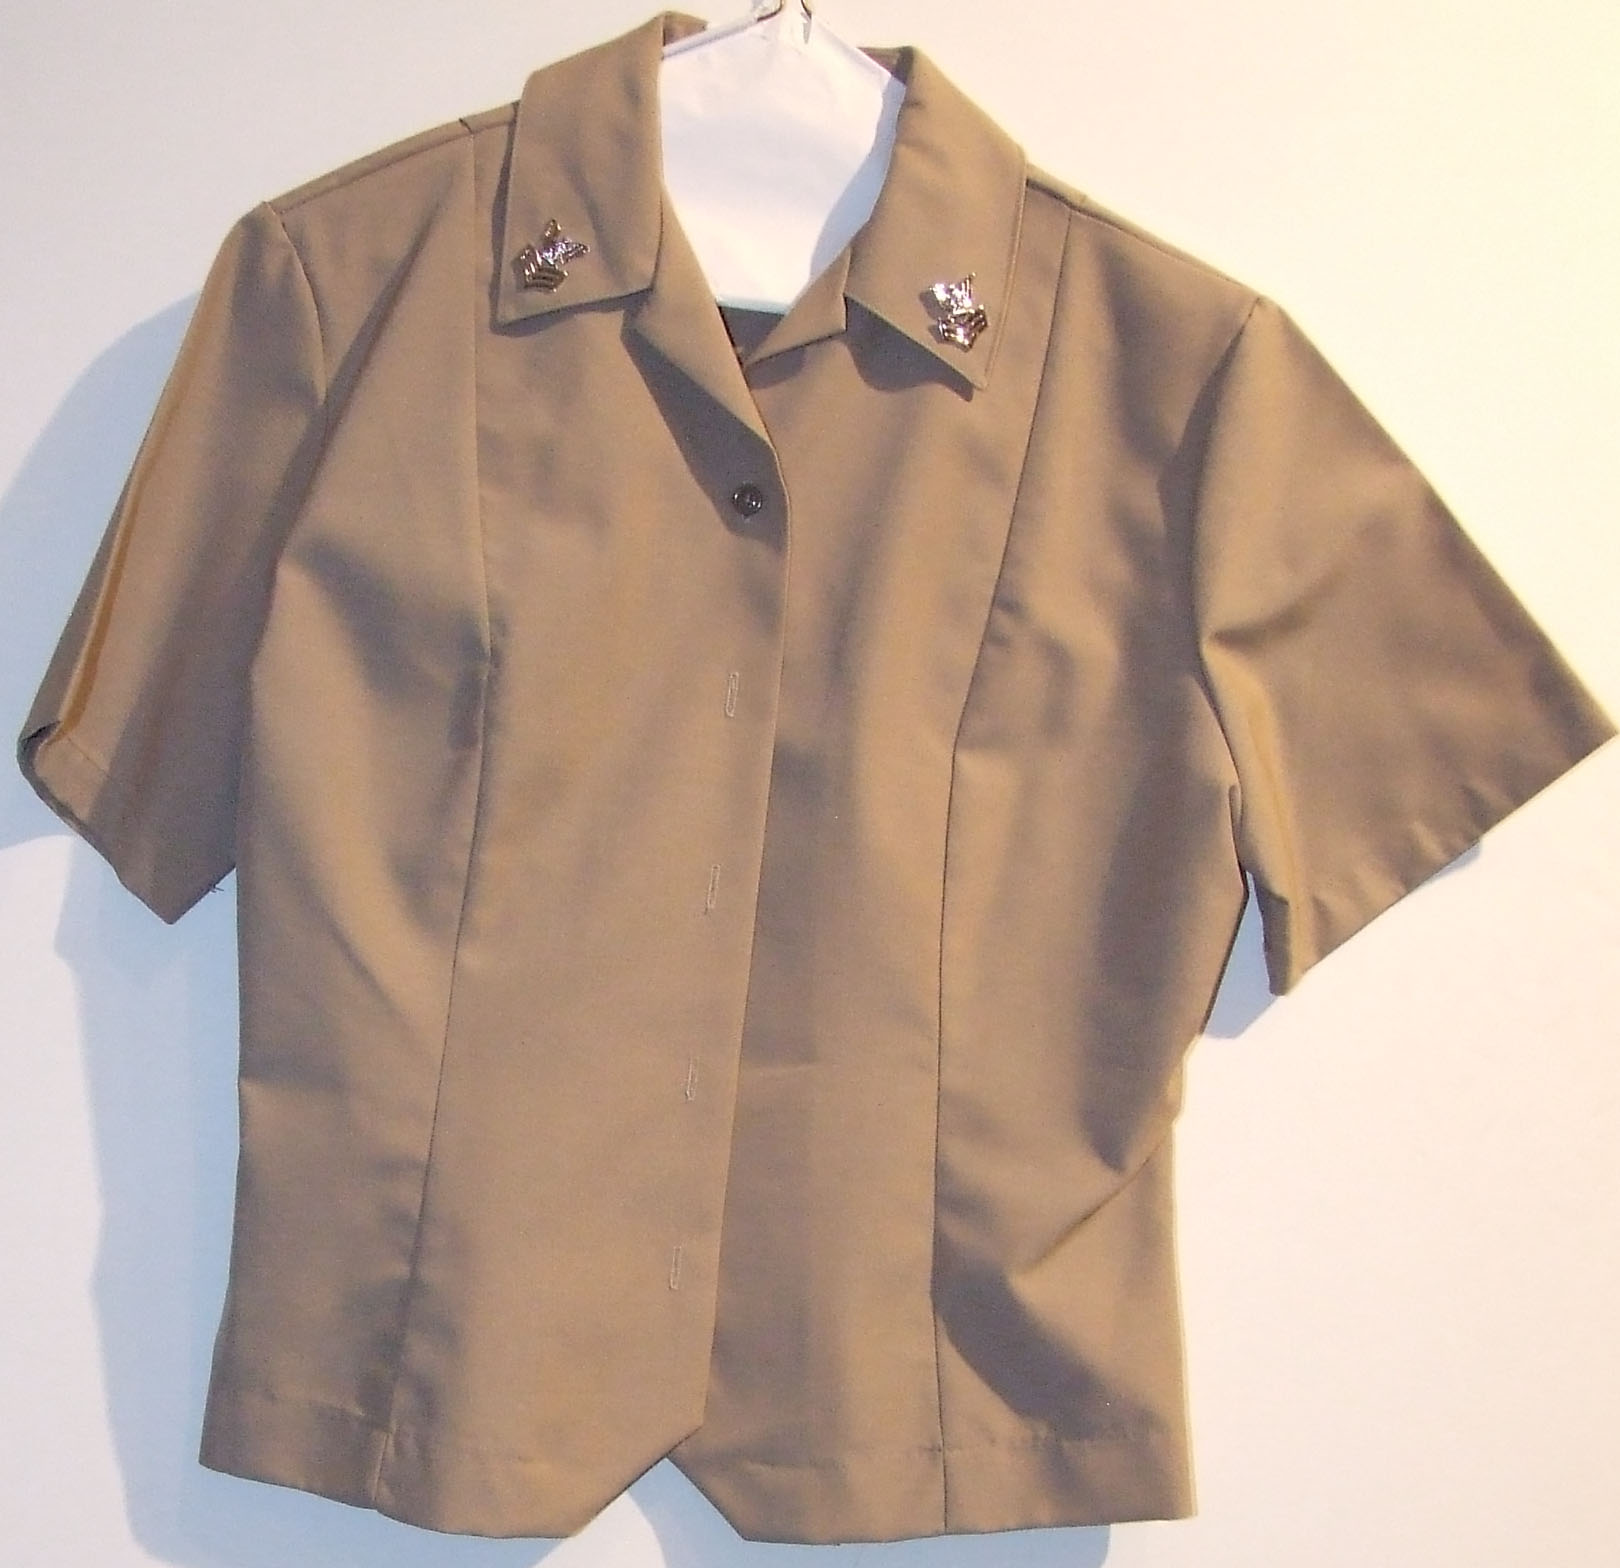 U S  NAVY ENLISTED SERVICE UNIFORM, PETTY OFFICER FIRST